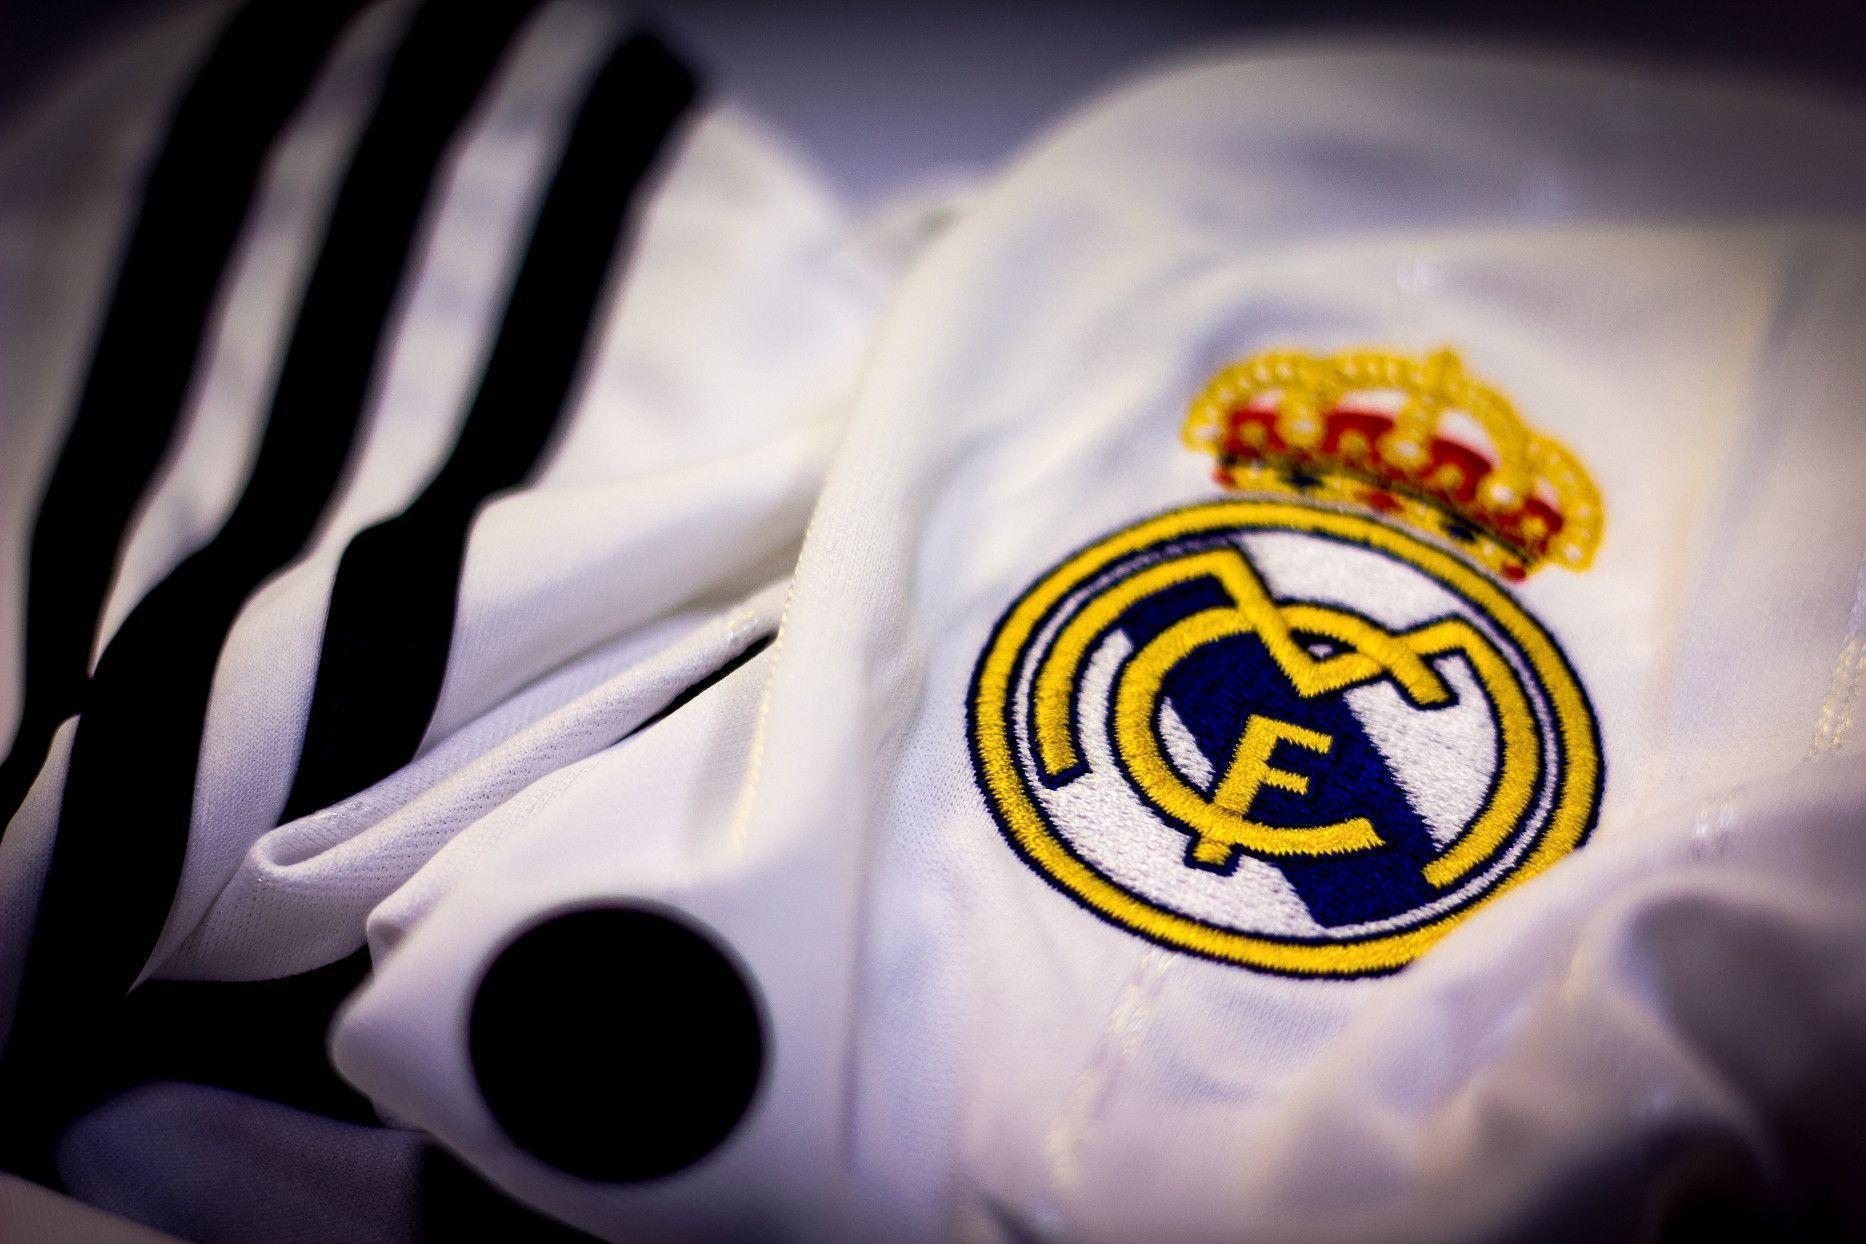 Cool Real Madrid Logo Wallpapers Free for Windows 1440x1080PX